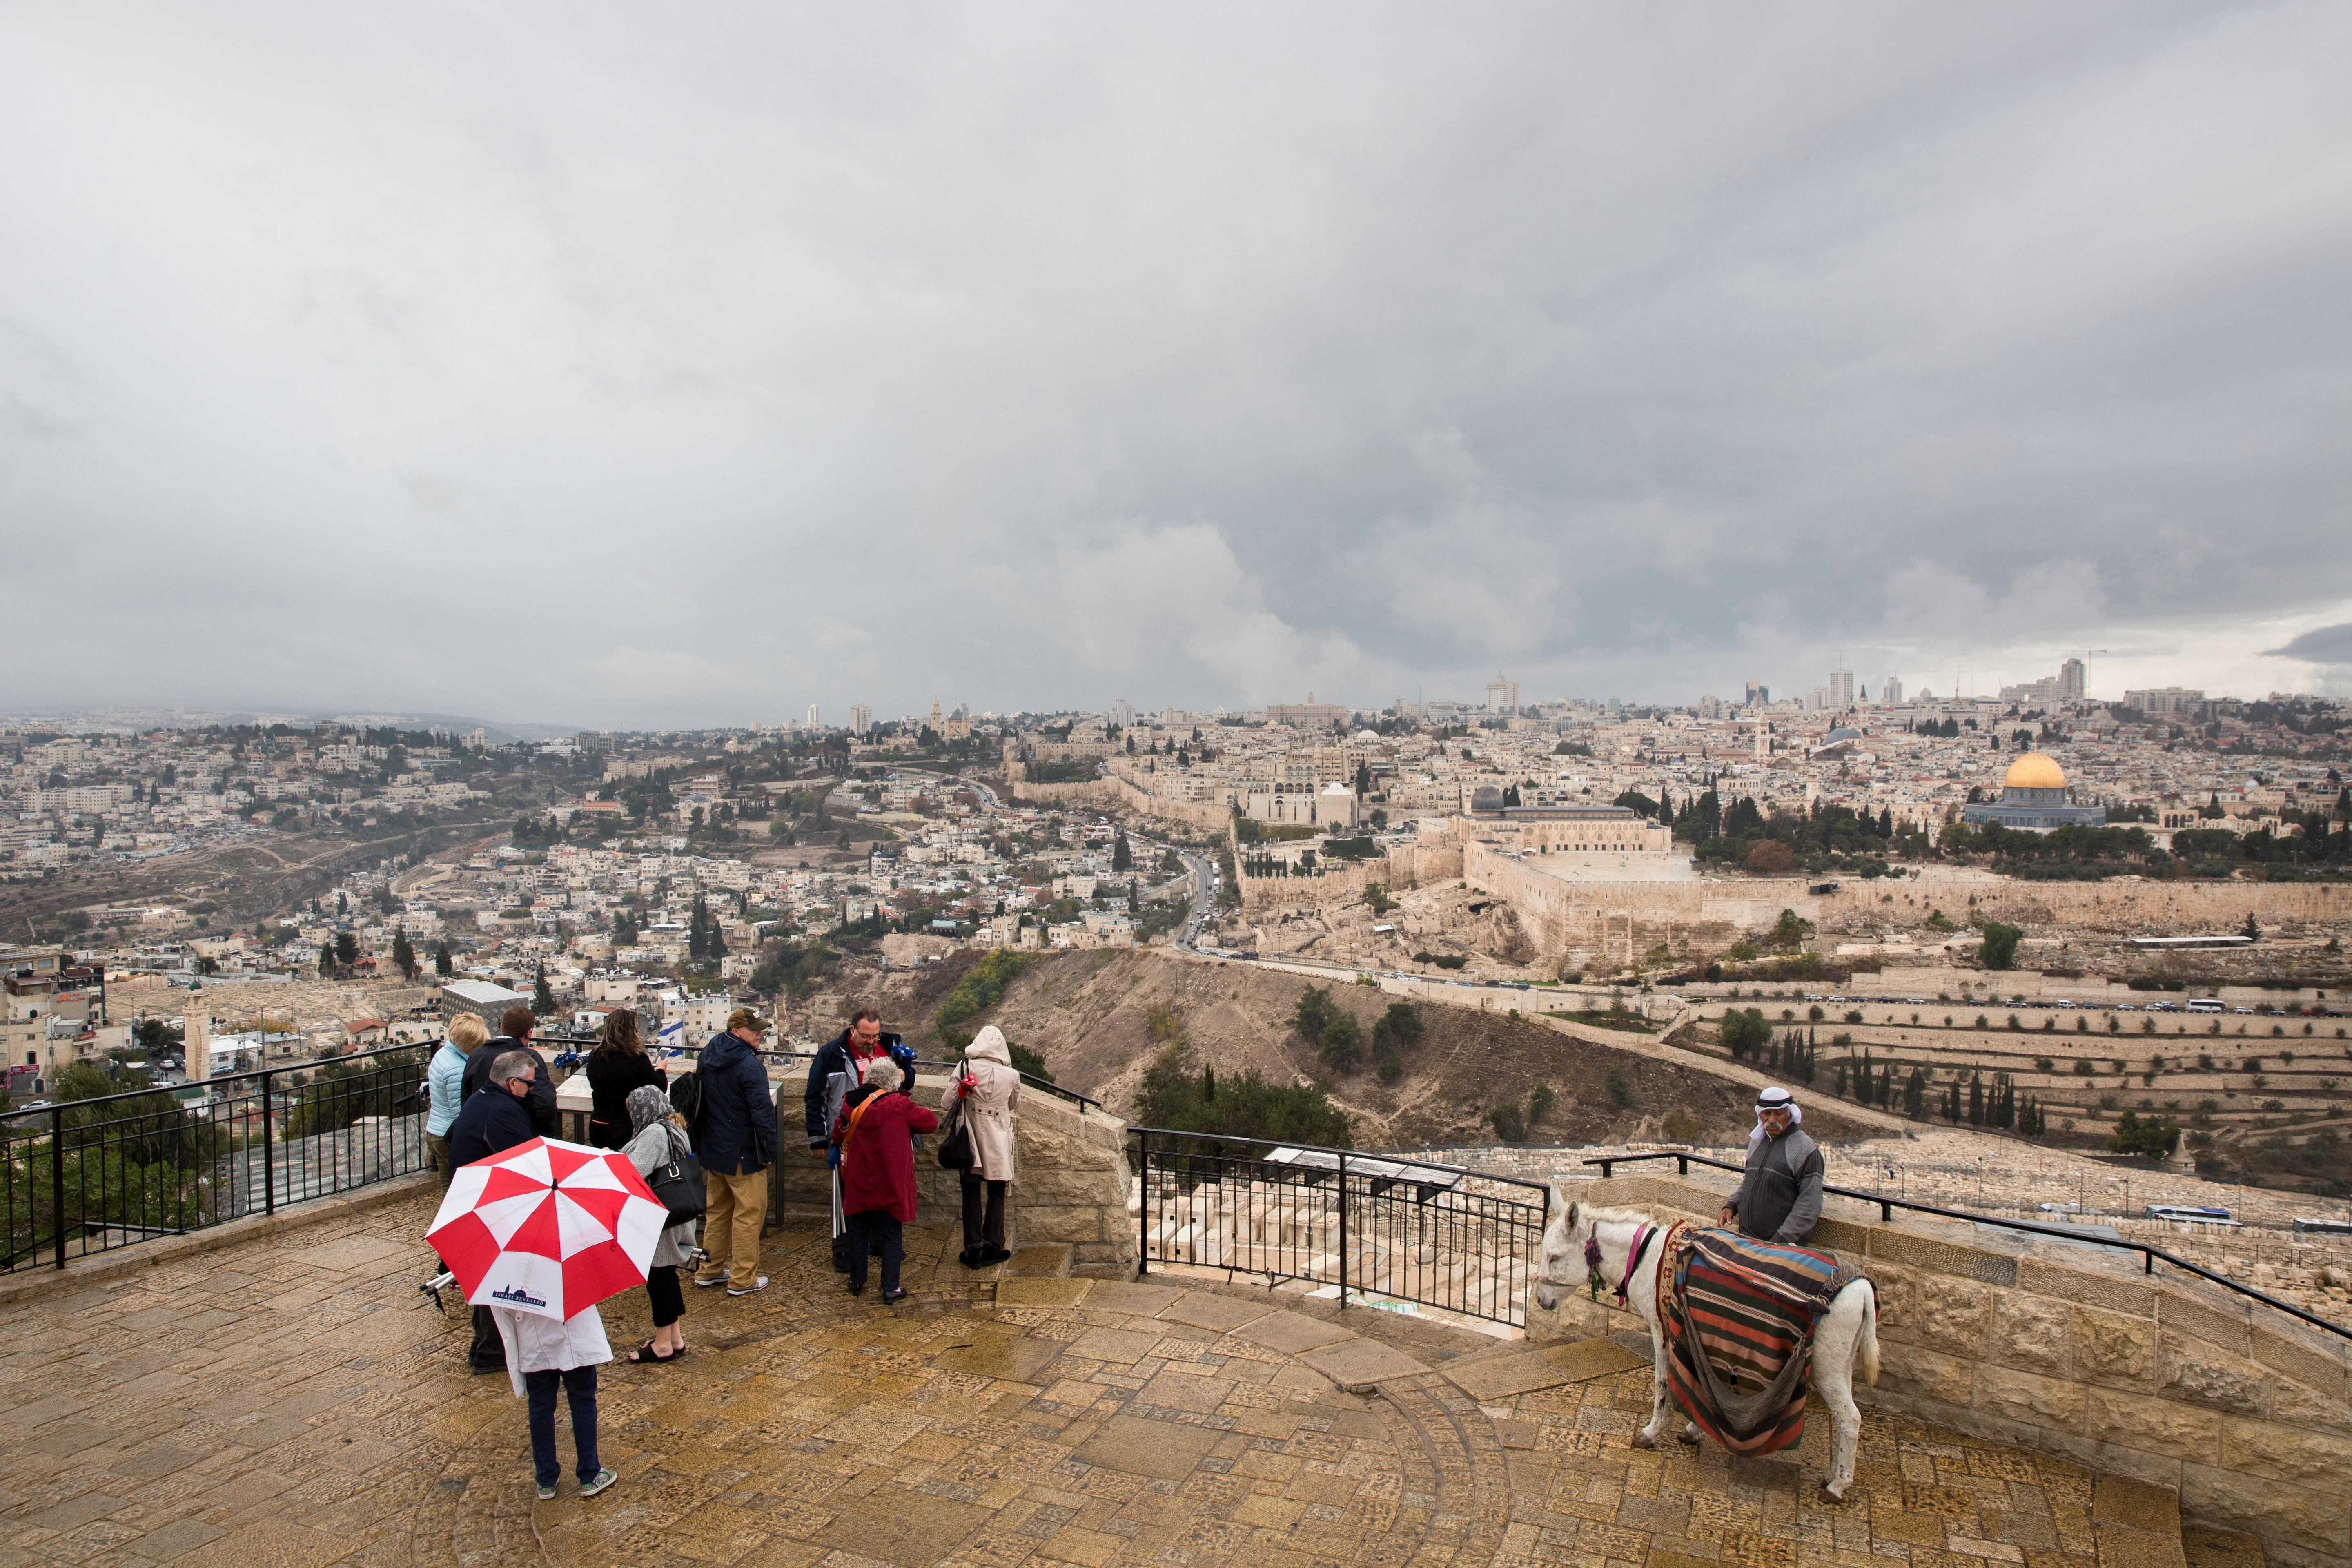 A group of tourists visit Mount of Olives overlooking the Old City in Jerusalem, Wednesday, Dec. 6, 2017. U.S. officials say President Donald Trump will recognize Jerusalem as Israel's capital Wednesday, Dec. 6, and instruct the State Department to begin the multi-year process of moving the American embassy from Tel Aviv to the holy city. His decision could have deep repercussions across the region. (AP Photo/Oded Balilty)